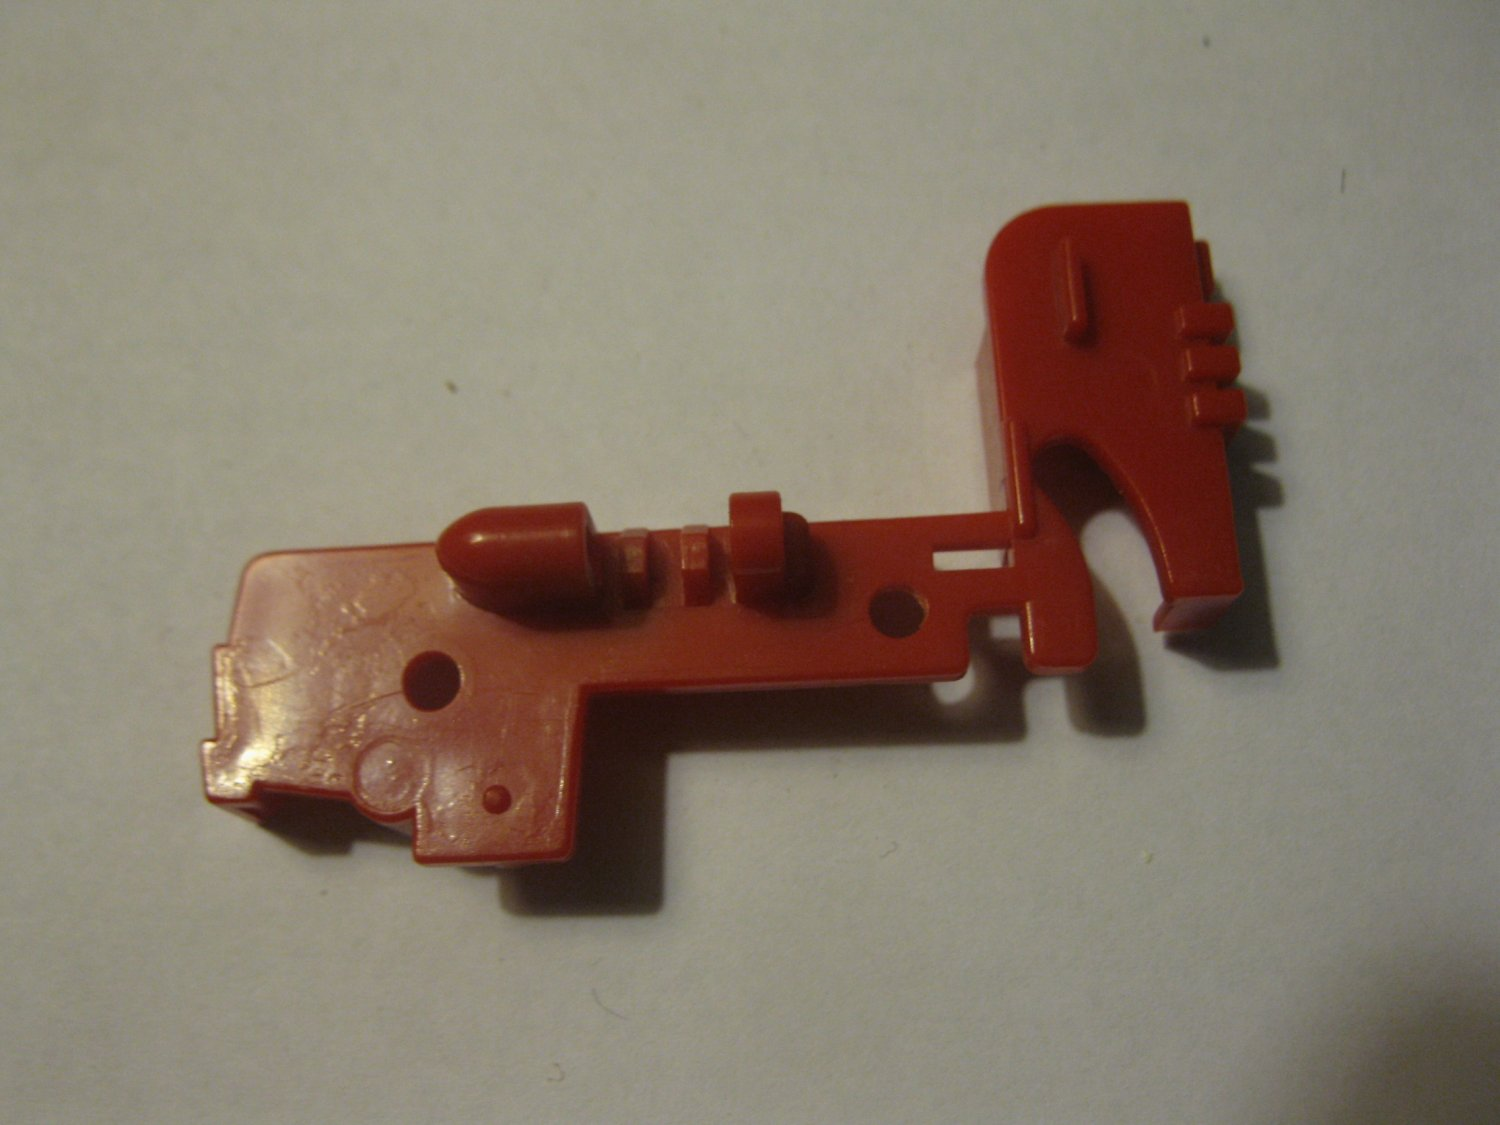 G1 Transformers Action figure part: 1984 Ratchet - Ambulance Interior Red Section #1